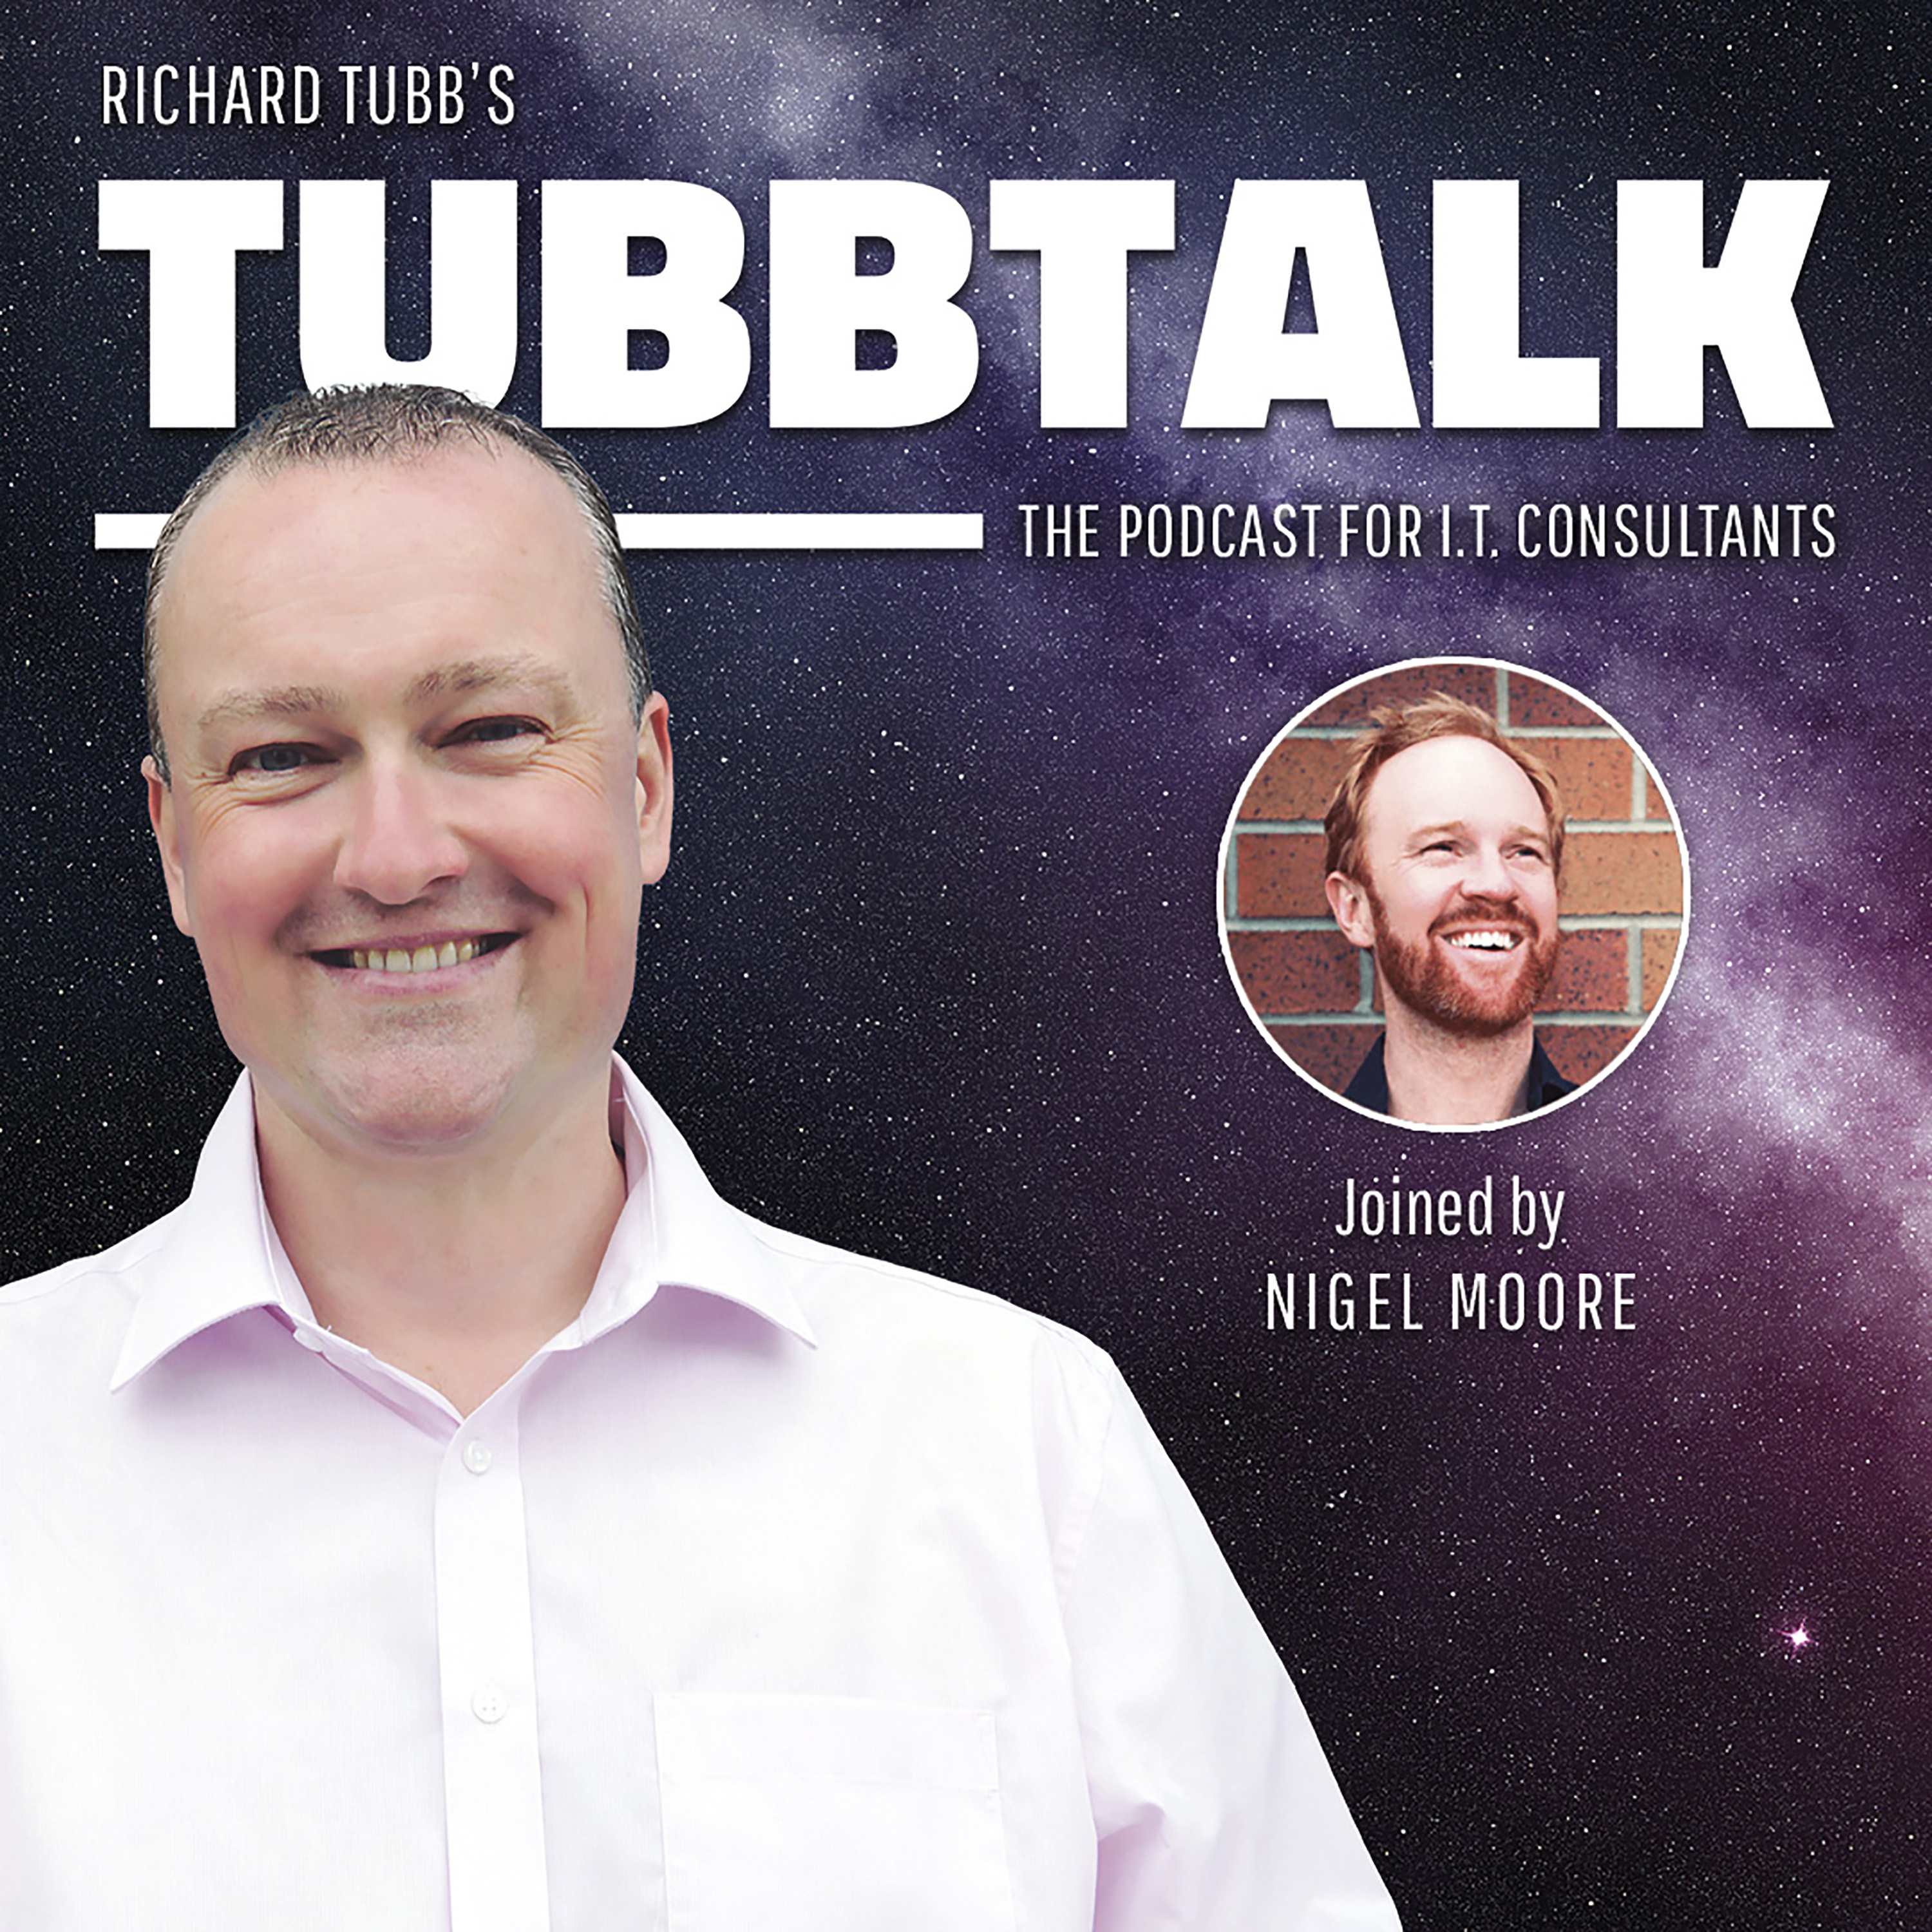 Artwork for podcast TubbTalk - The Podcast for IT Consultants